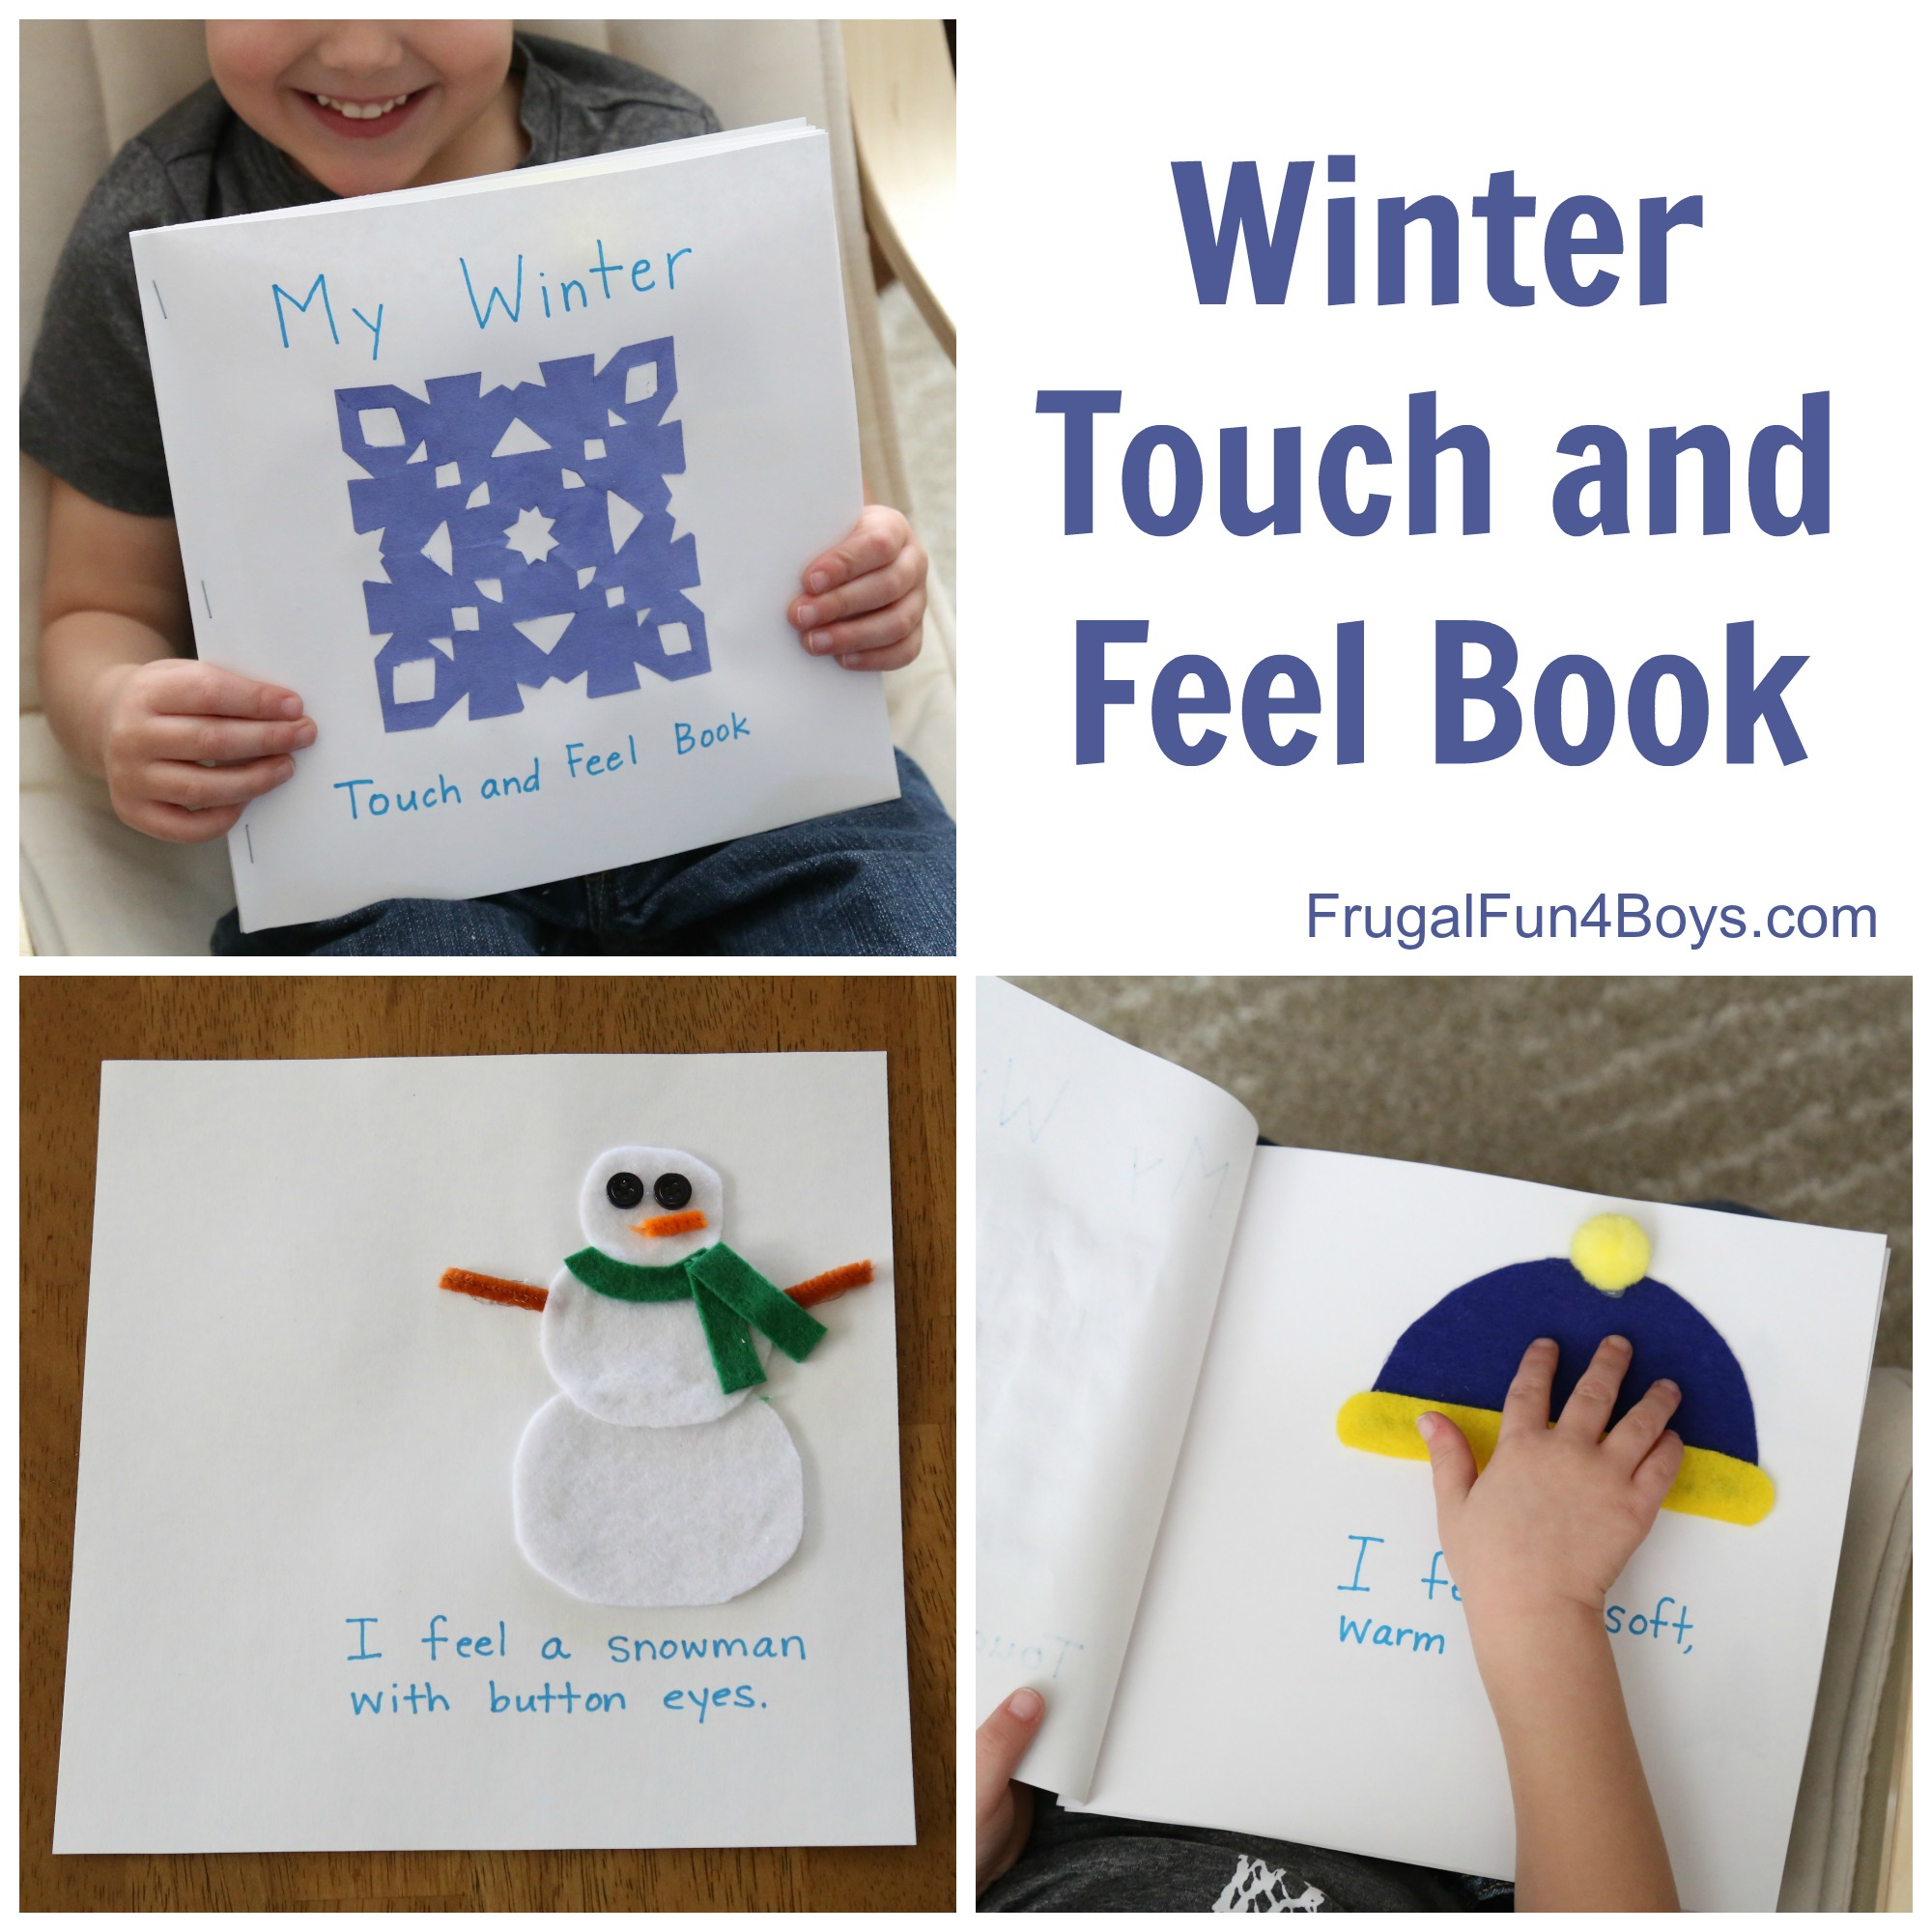 Make a Winter Touch and Feel Book that Toddlers and Preschoolers will Love!